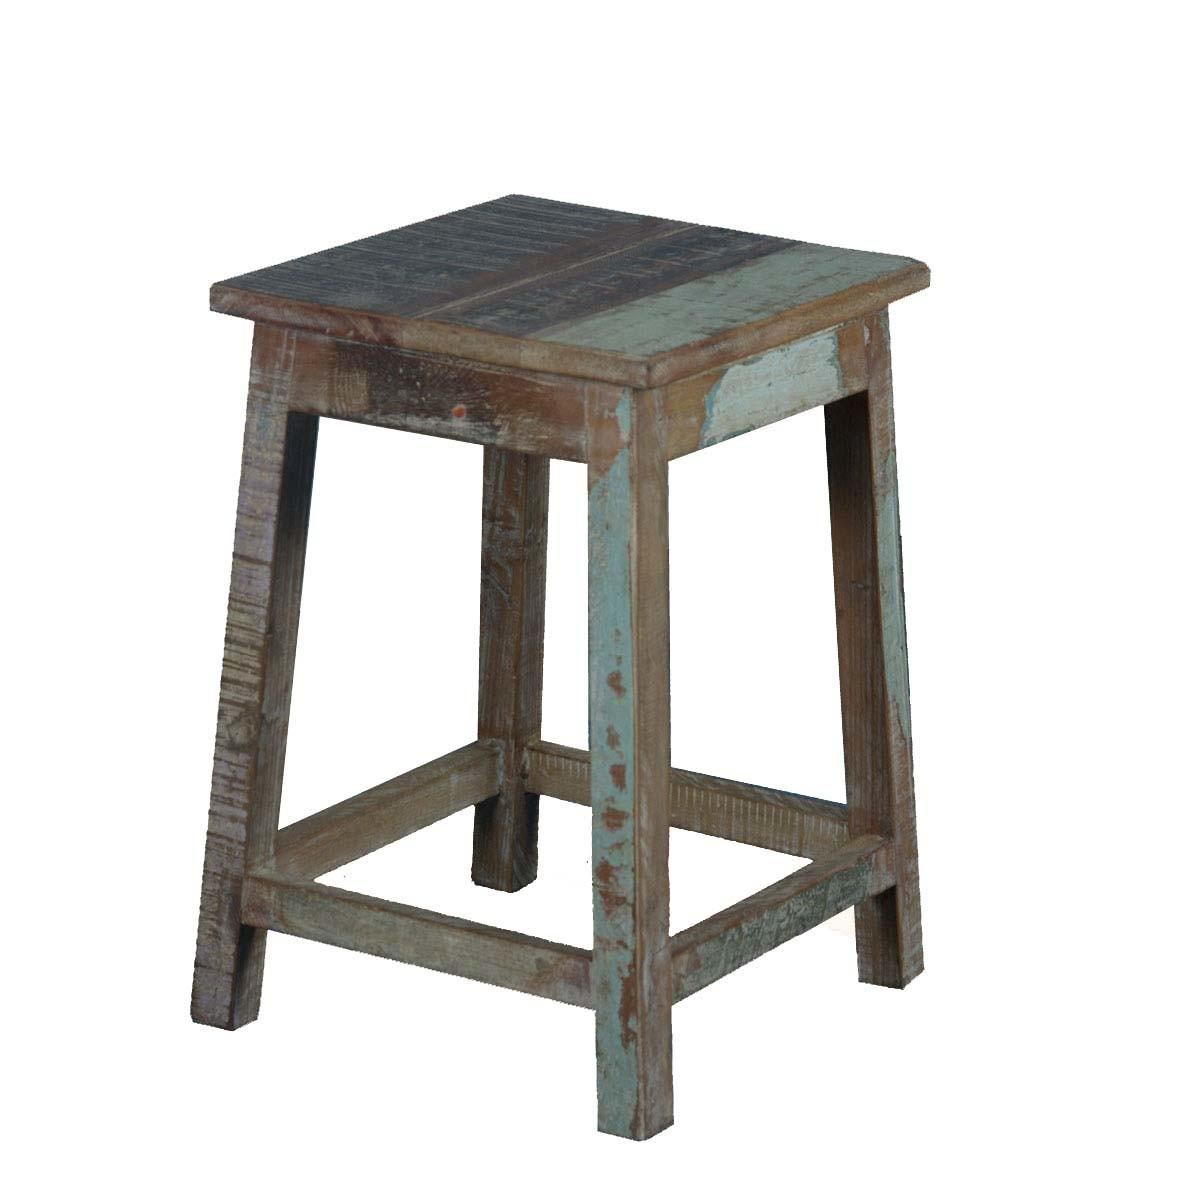 Square Rustic Reclaimed Wood Pedestal End Table Stool